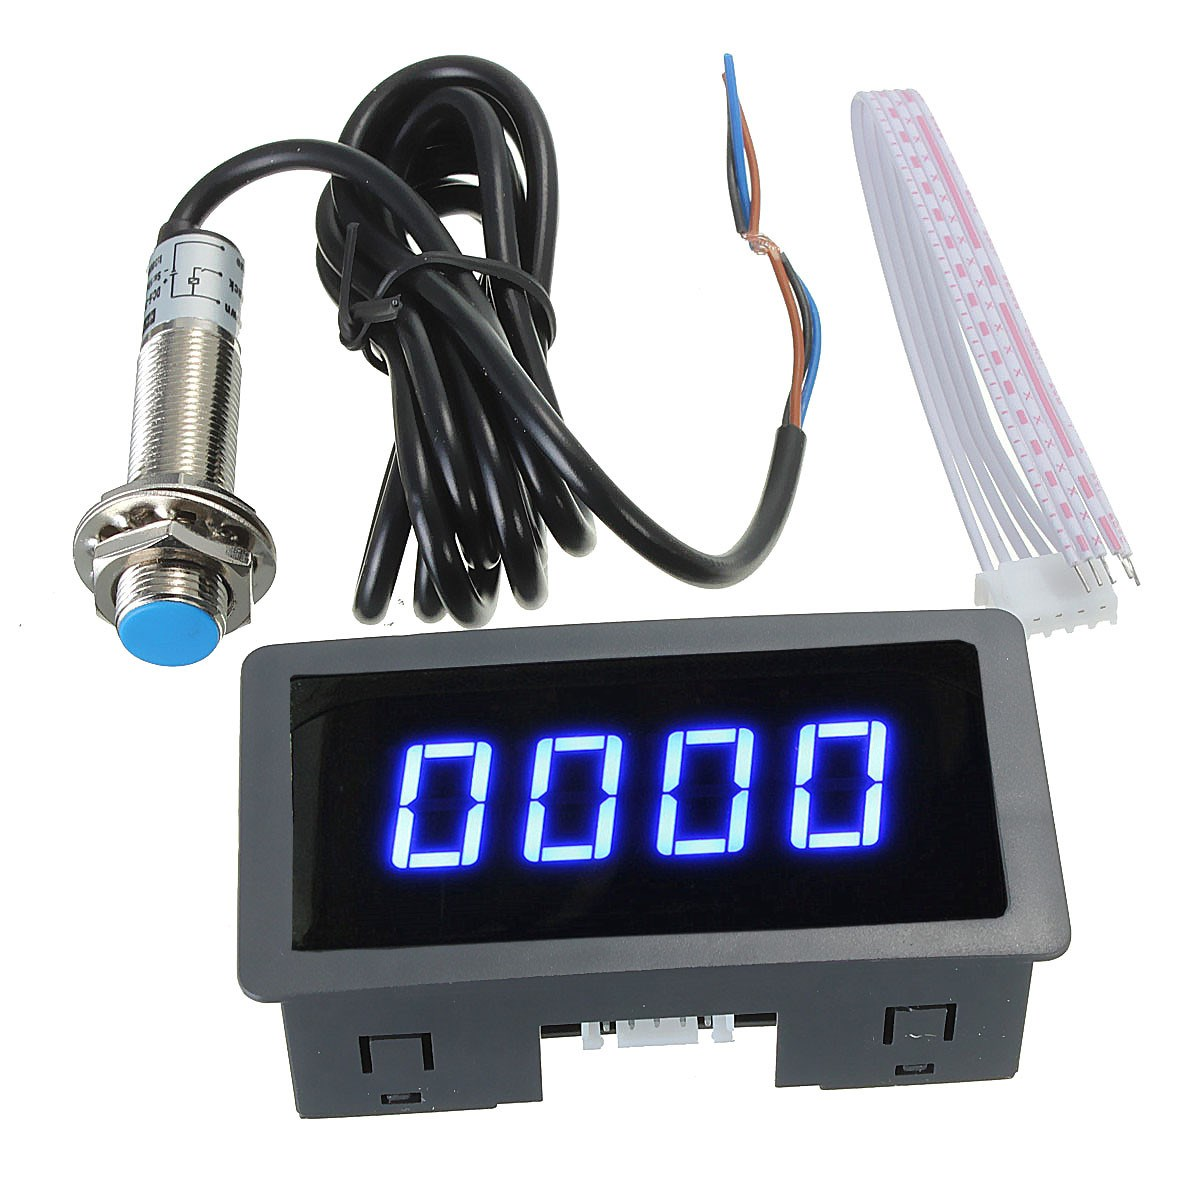 4 Digital LED Blue Tachometer RPM Speed Meter+Hall Proximity Switch Sensor NPN hot sale 4 digital green led tachometer rpm speed meter proximity switch sensor 12v